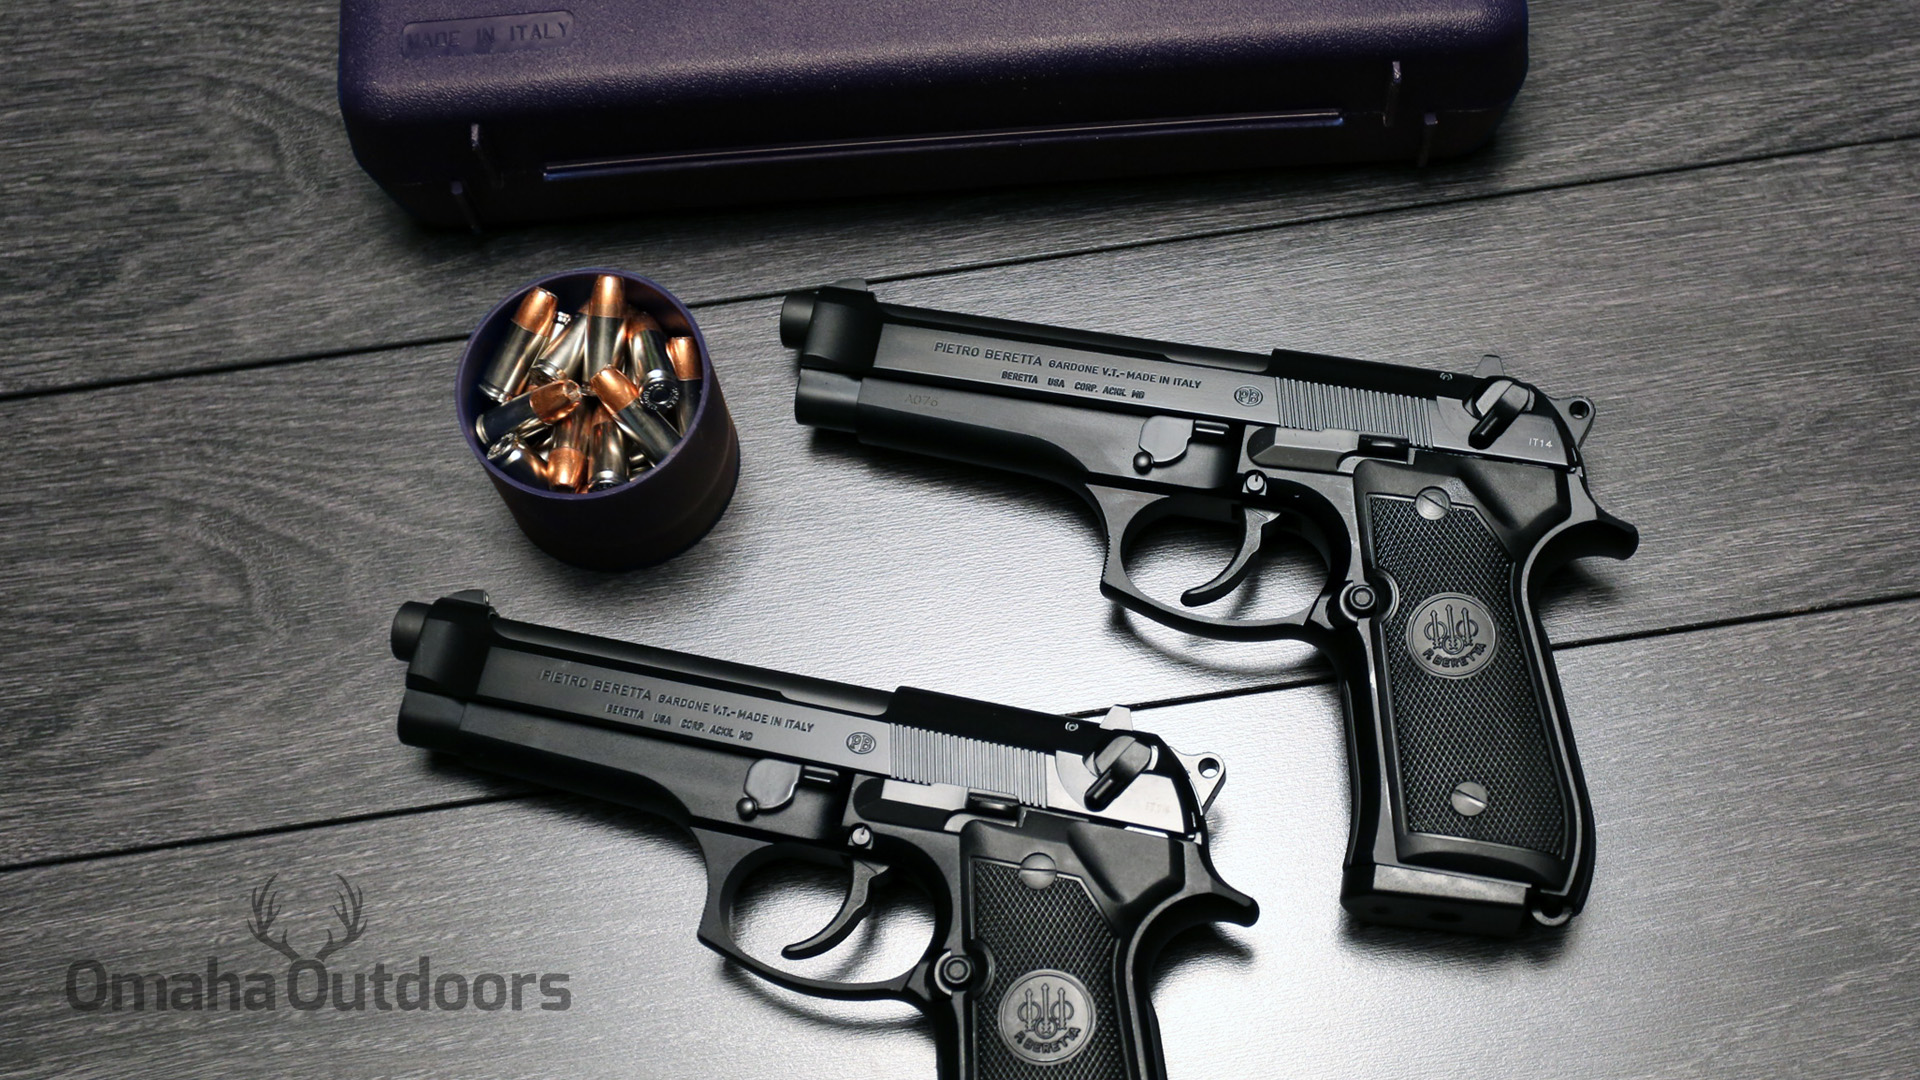 Gun Review: Beretta 92FS 9mm - The 30th Anniversary - Omaha